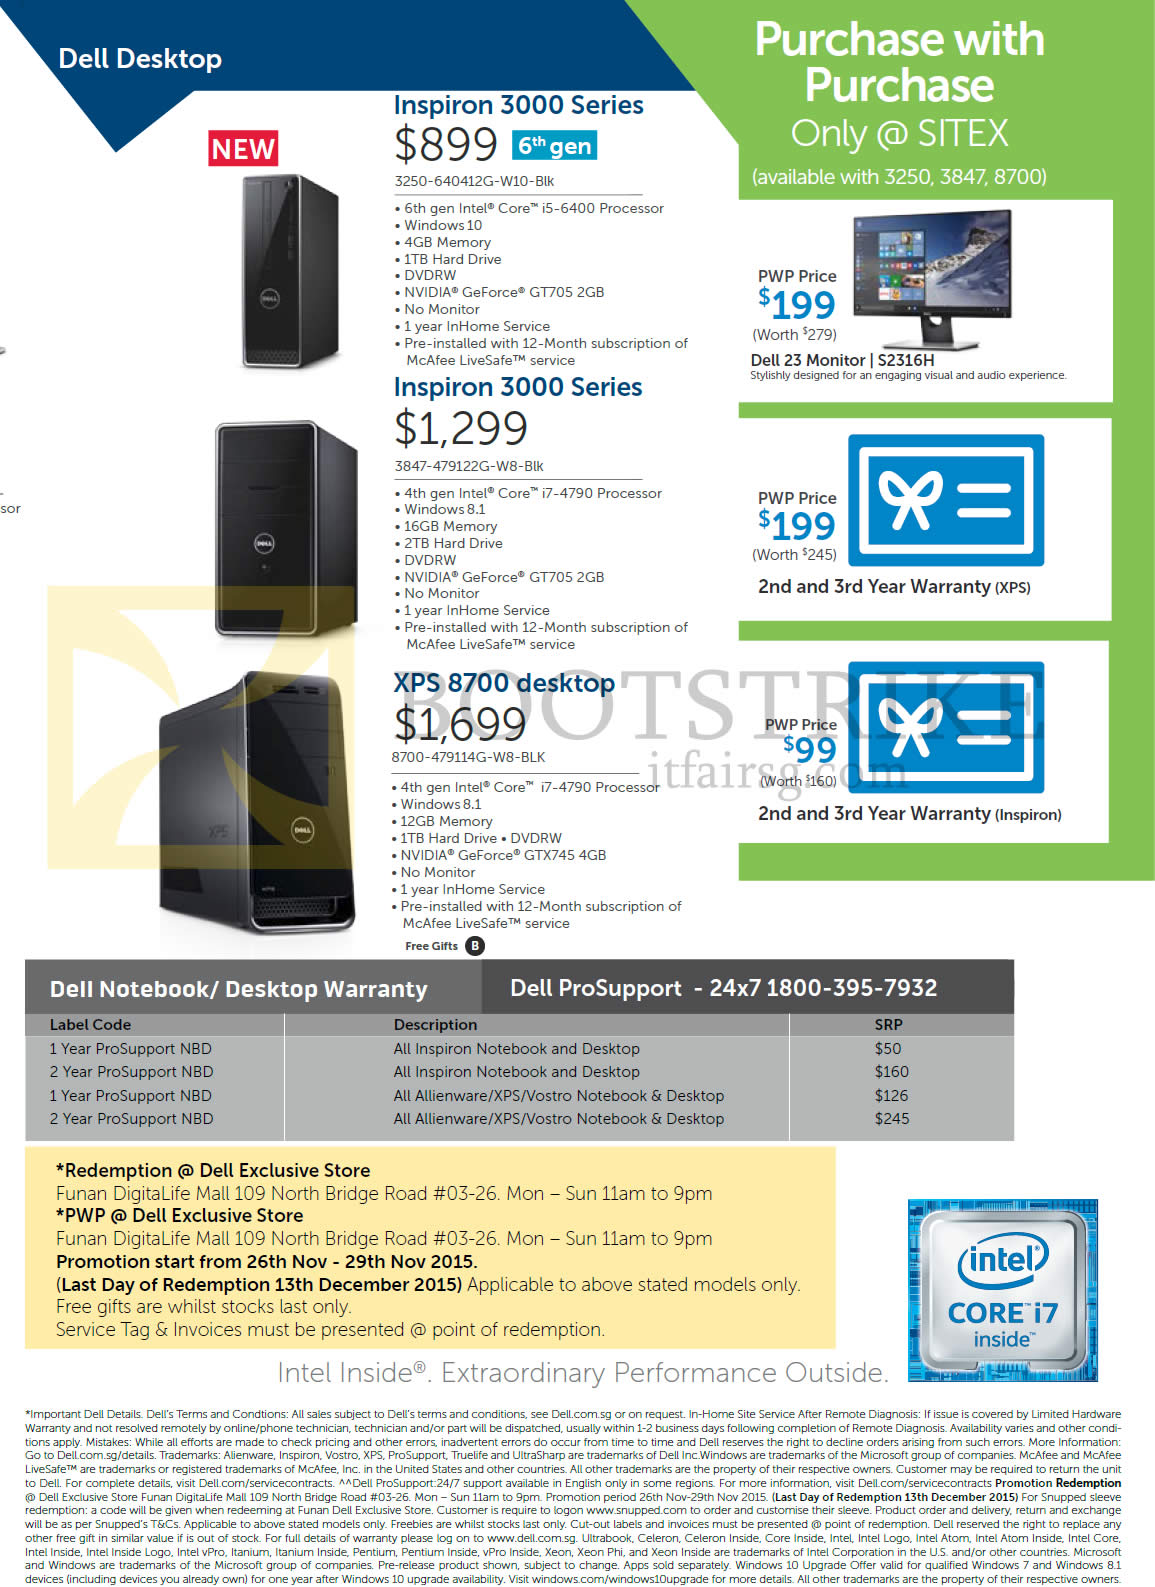 SITEX 2015 price list image brochure of Dell Desktop PCs Inspiron, 3250-640412G-W10-Blk, 3847-479122G-W8-Blk, 8700-479114G-W8-BLK, Purchase With Purchase, 23 Monitor S2316H, 2nd And 3rd Year Warranty